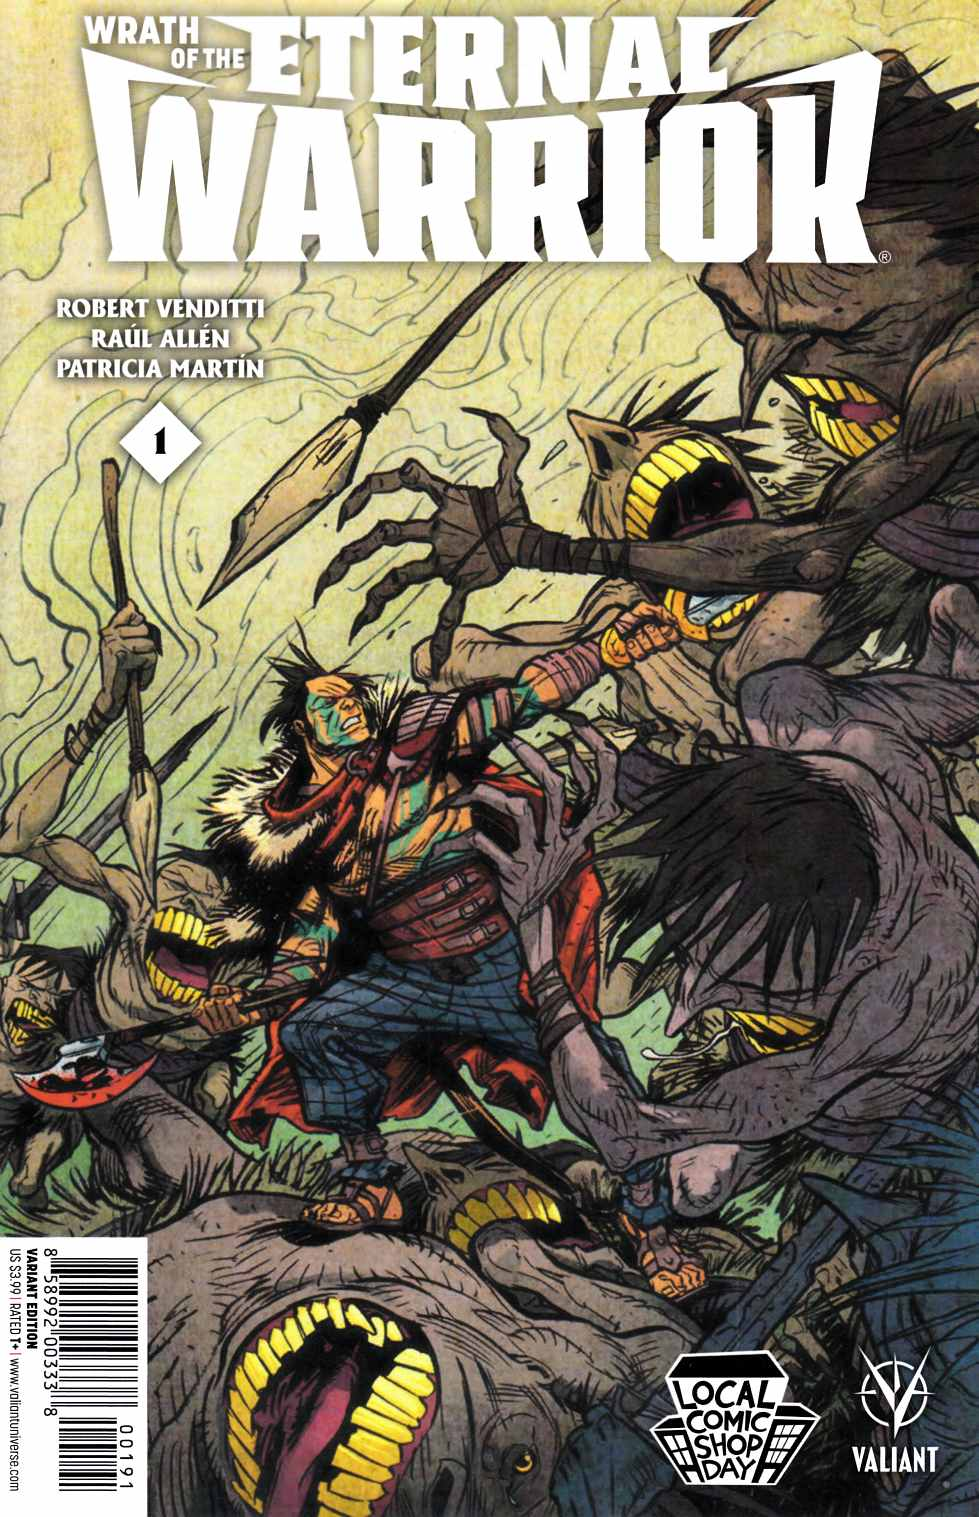 Wrath of the Eternal Warrior #1 LCSD 2015 Edition [Valiant Comic] THUMBNAIL